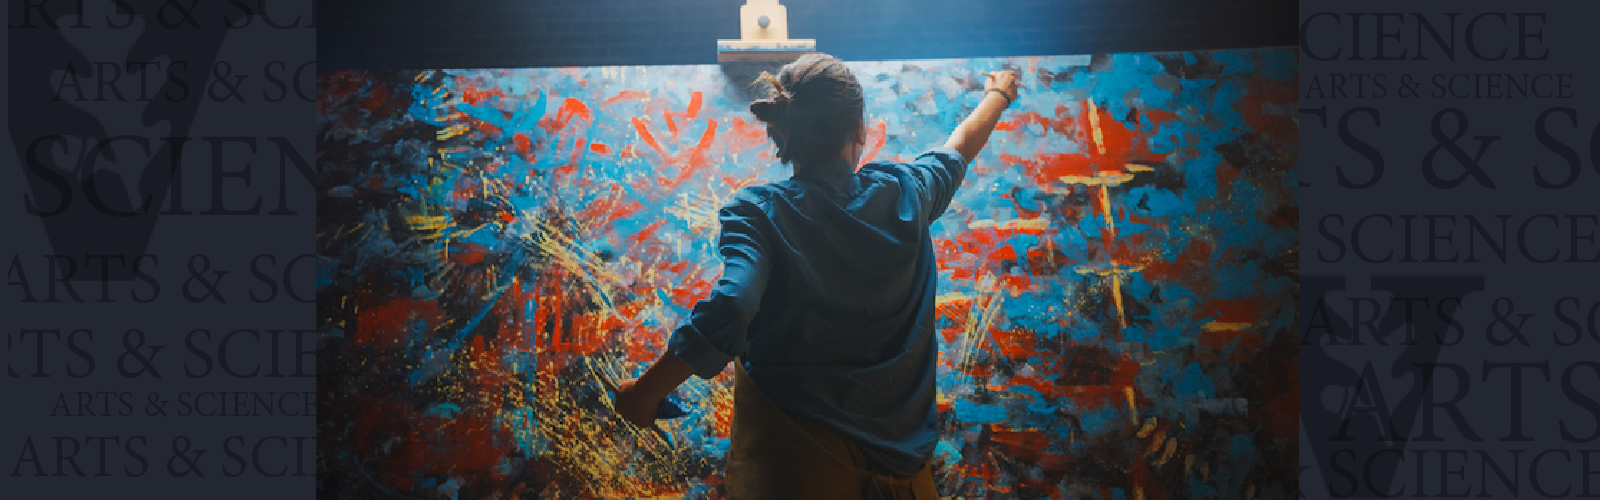 College boosts arts careers in surprising and important ways: report